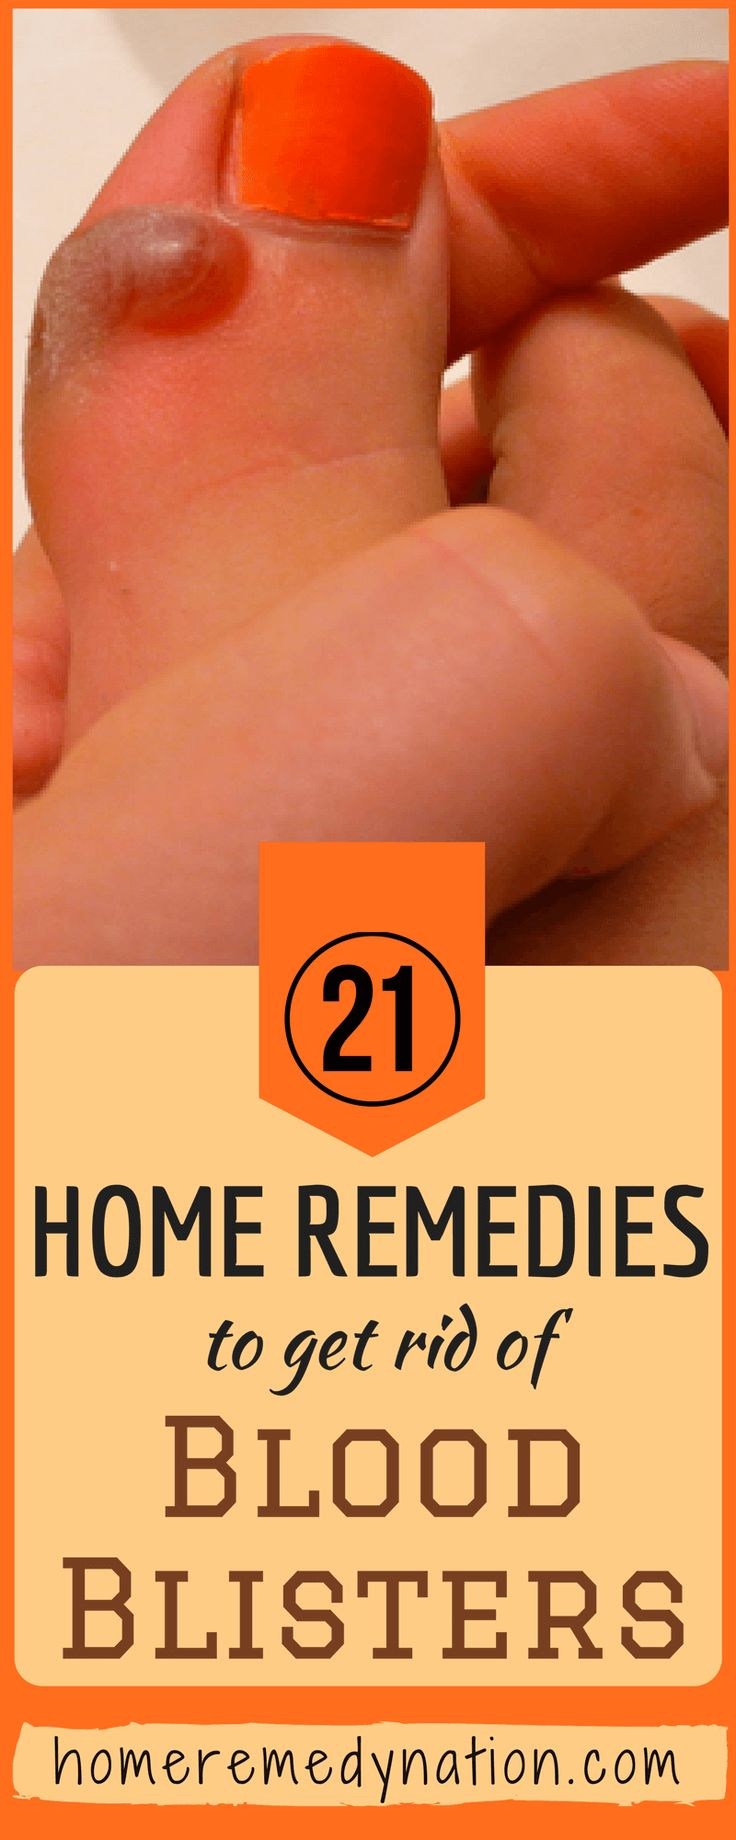 21 Wondrous Home Remedies To Get Rid Of Blood Blisters | Home Remedy Nation